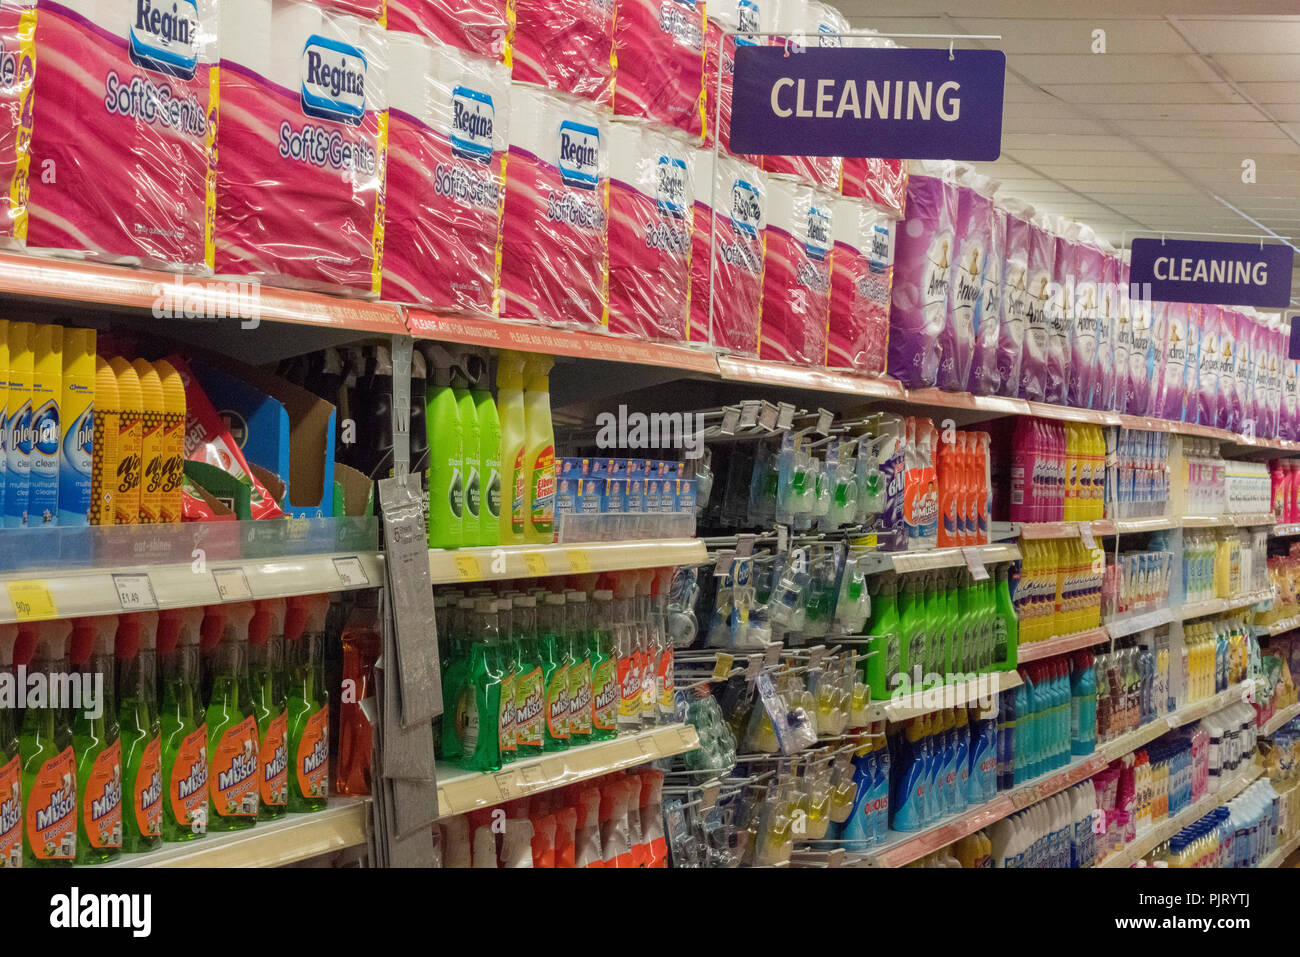 Cleaning Products Shelves Stock Photos & Cleaning Products